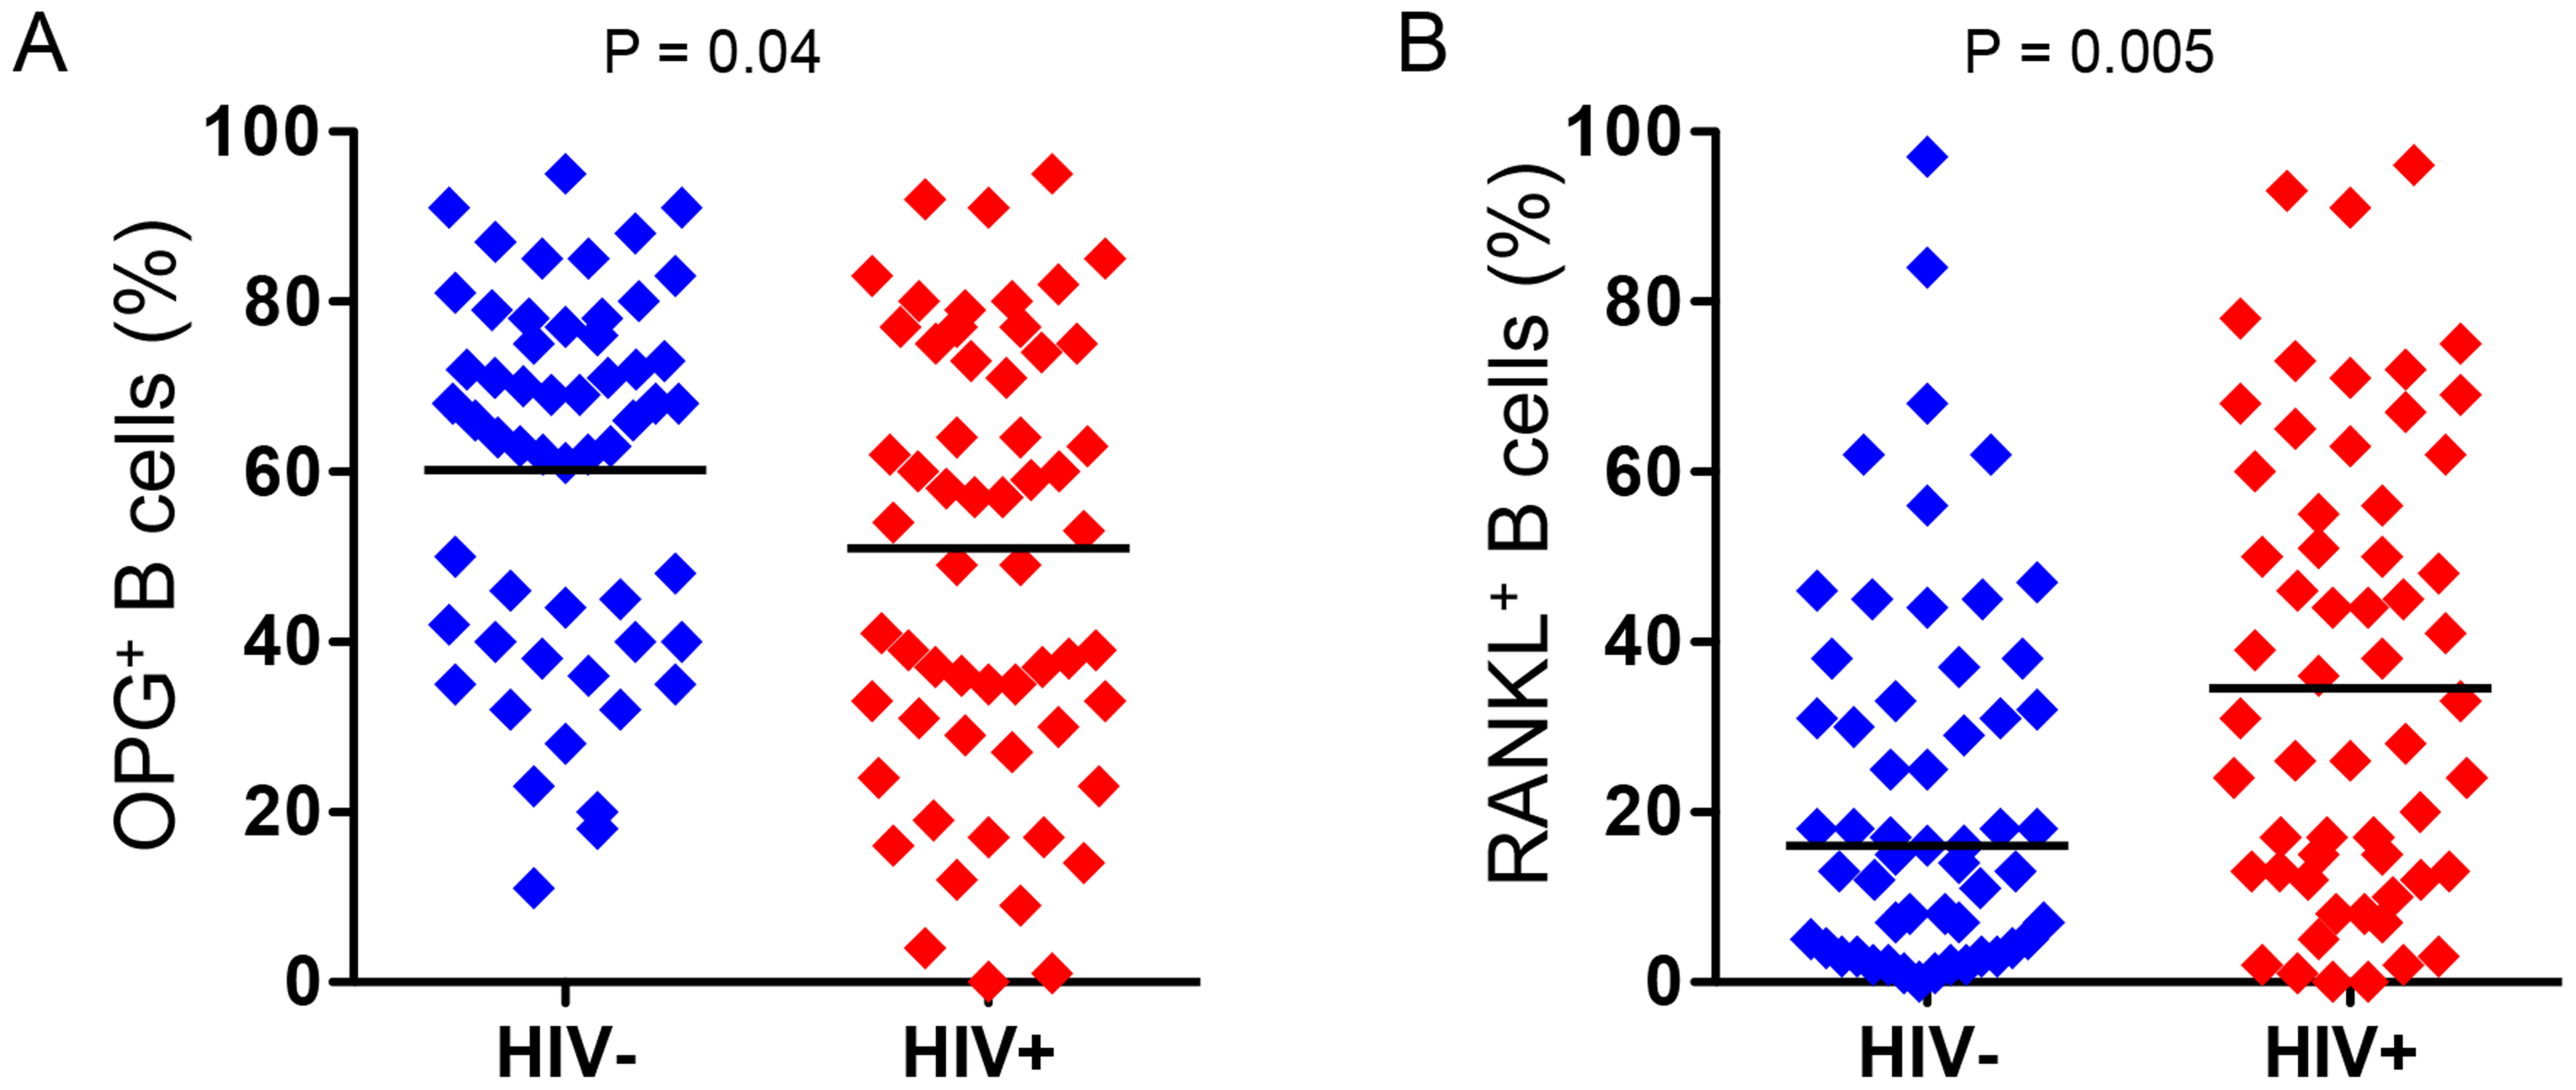 Increased frequency of RANKL-expressing B cells and decreased frequency of OPG-expressing B cells in HIV infection.